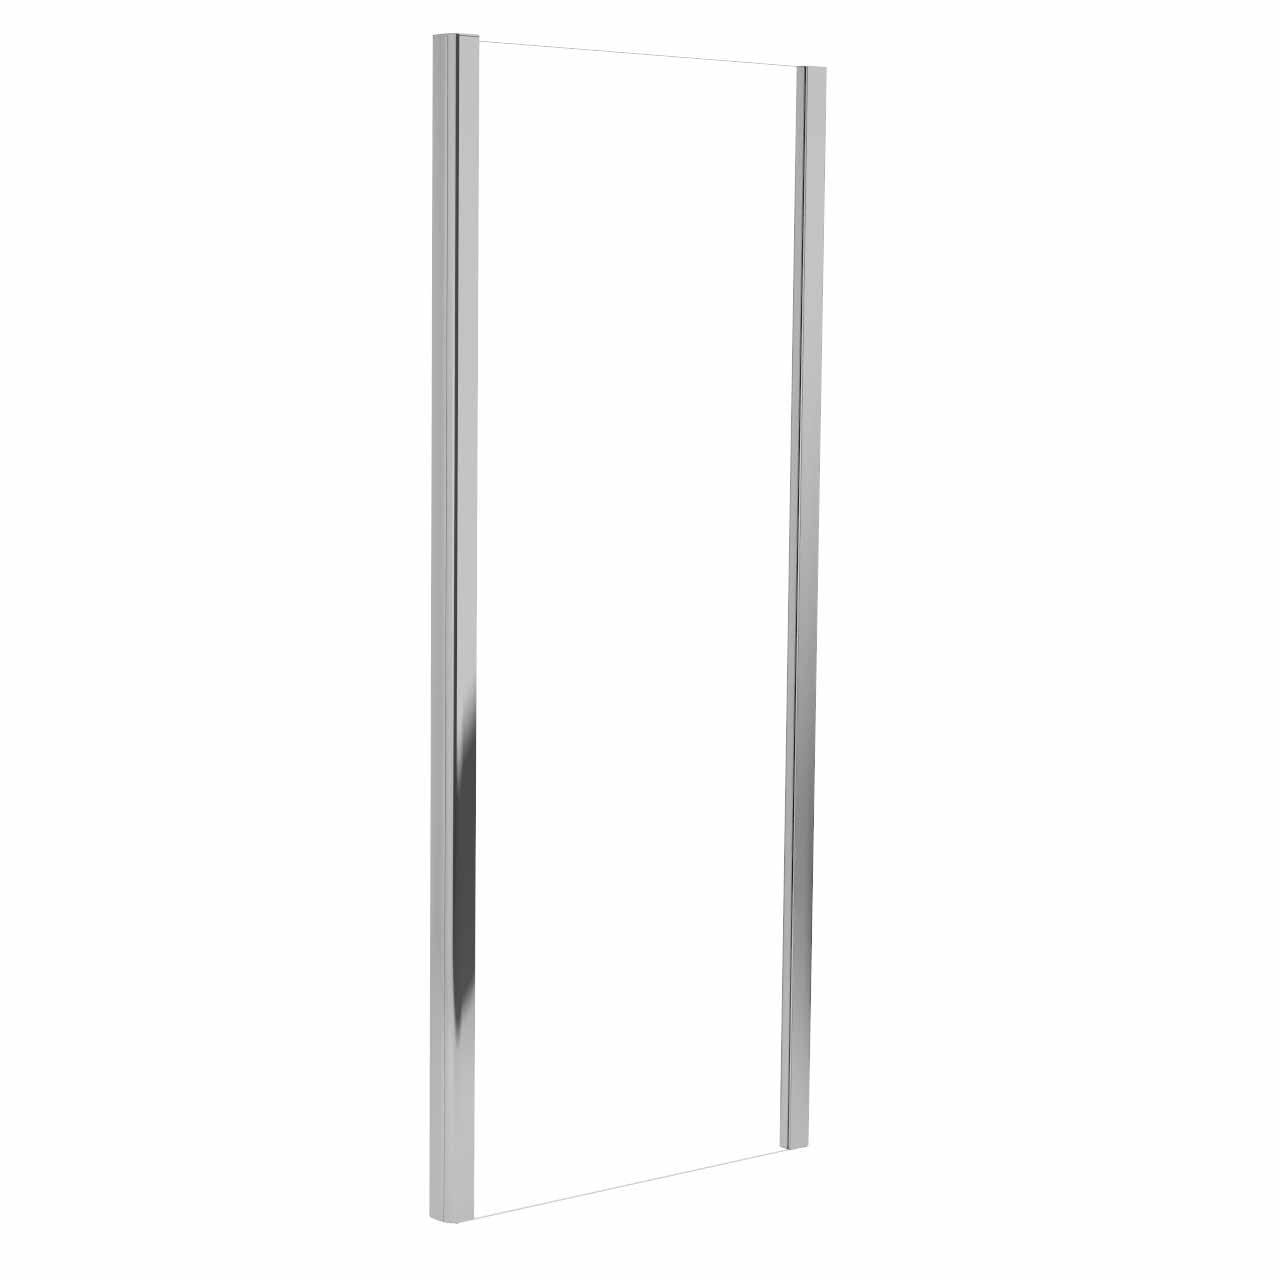 Series 8 Plus 900 x 800 Hinged Door Enclosure